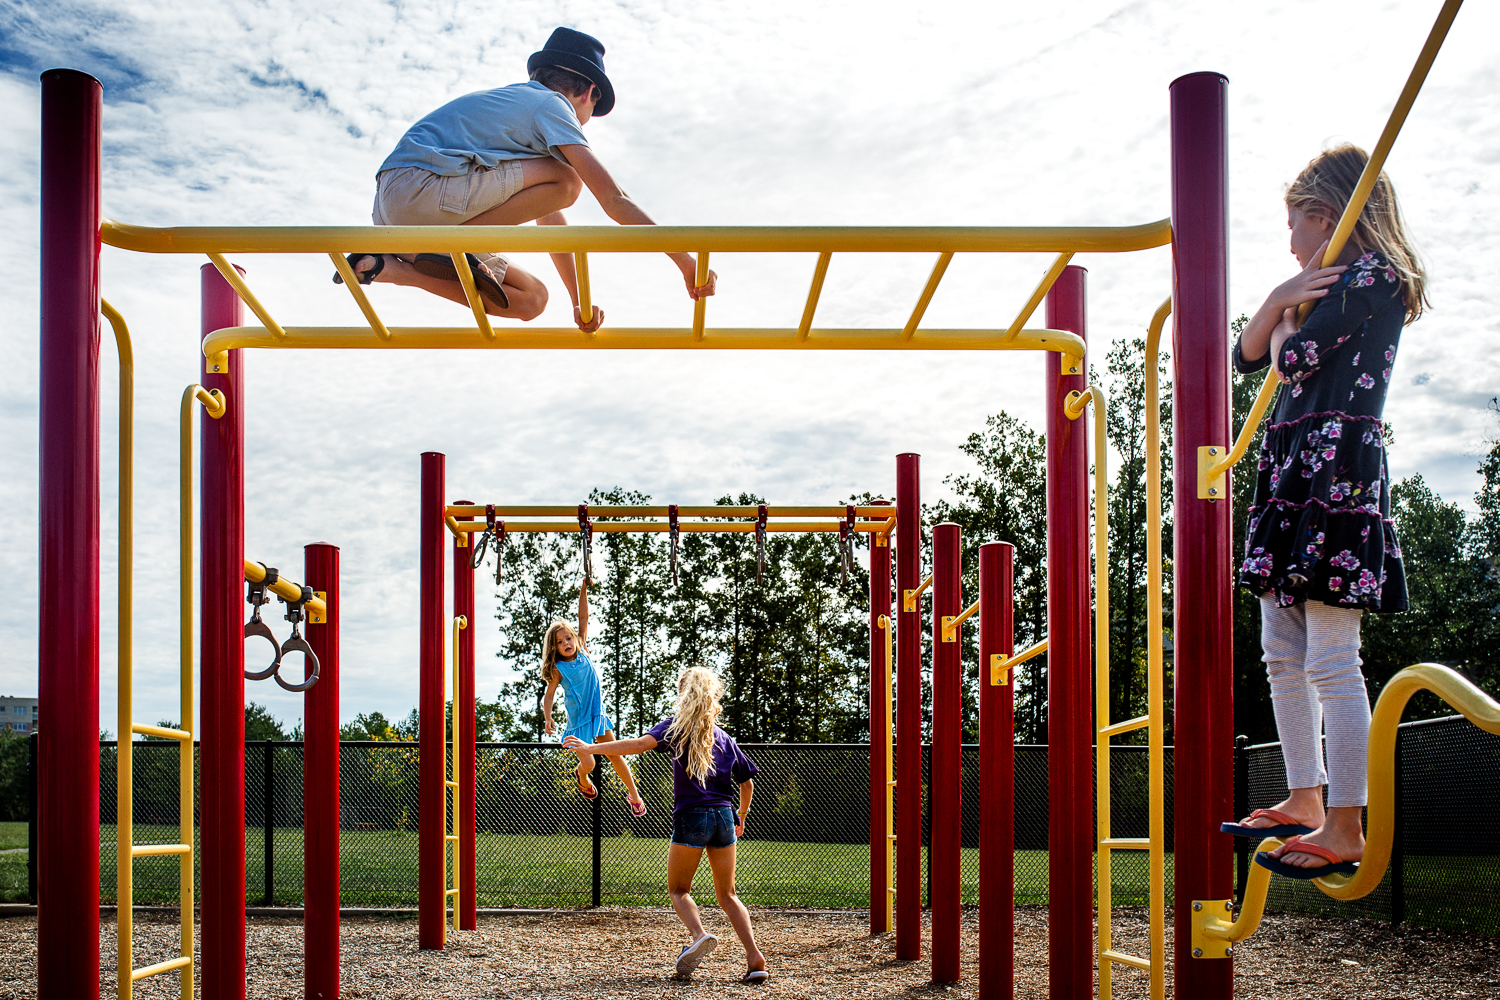 September 3, 2016 | Four in the Frame | Playground Rescue